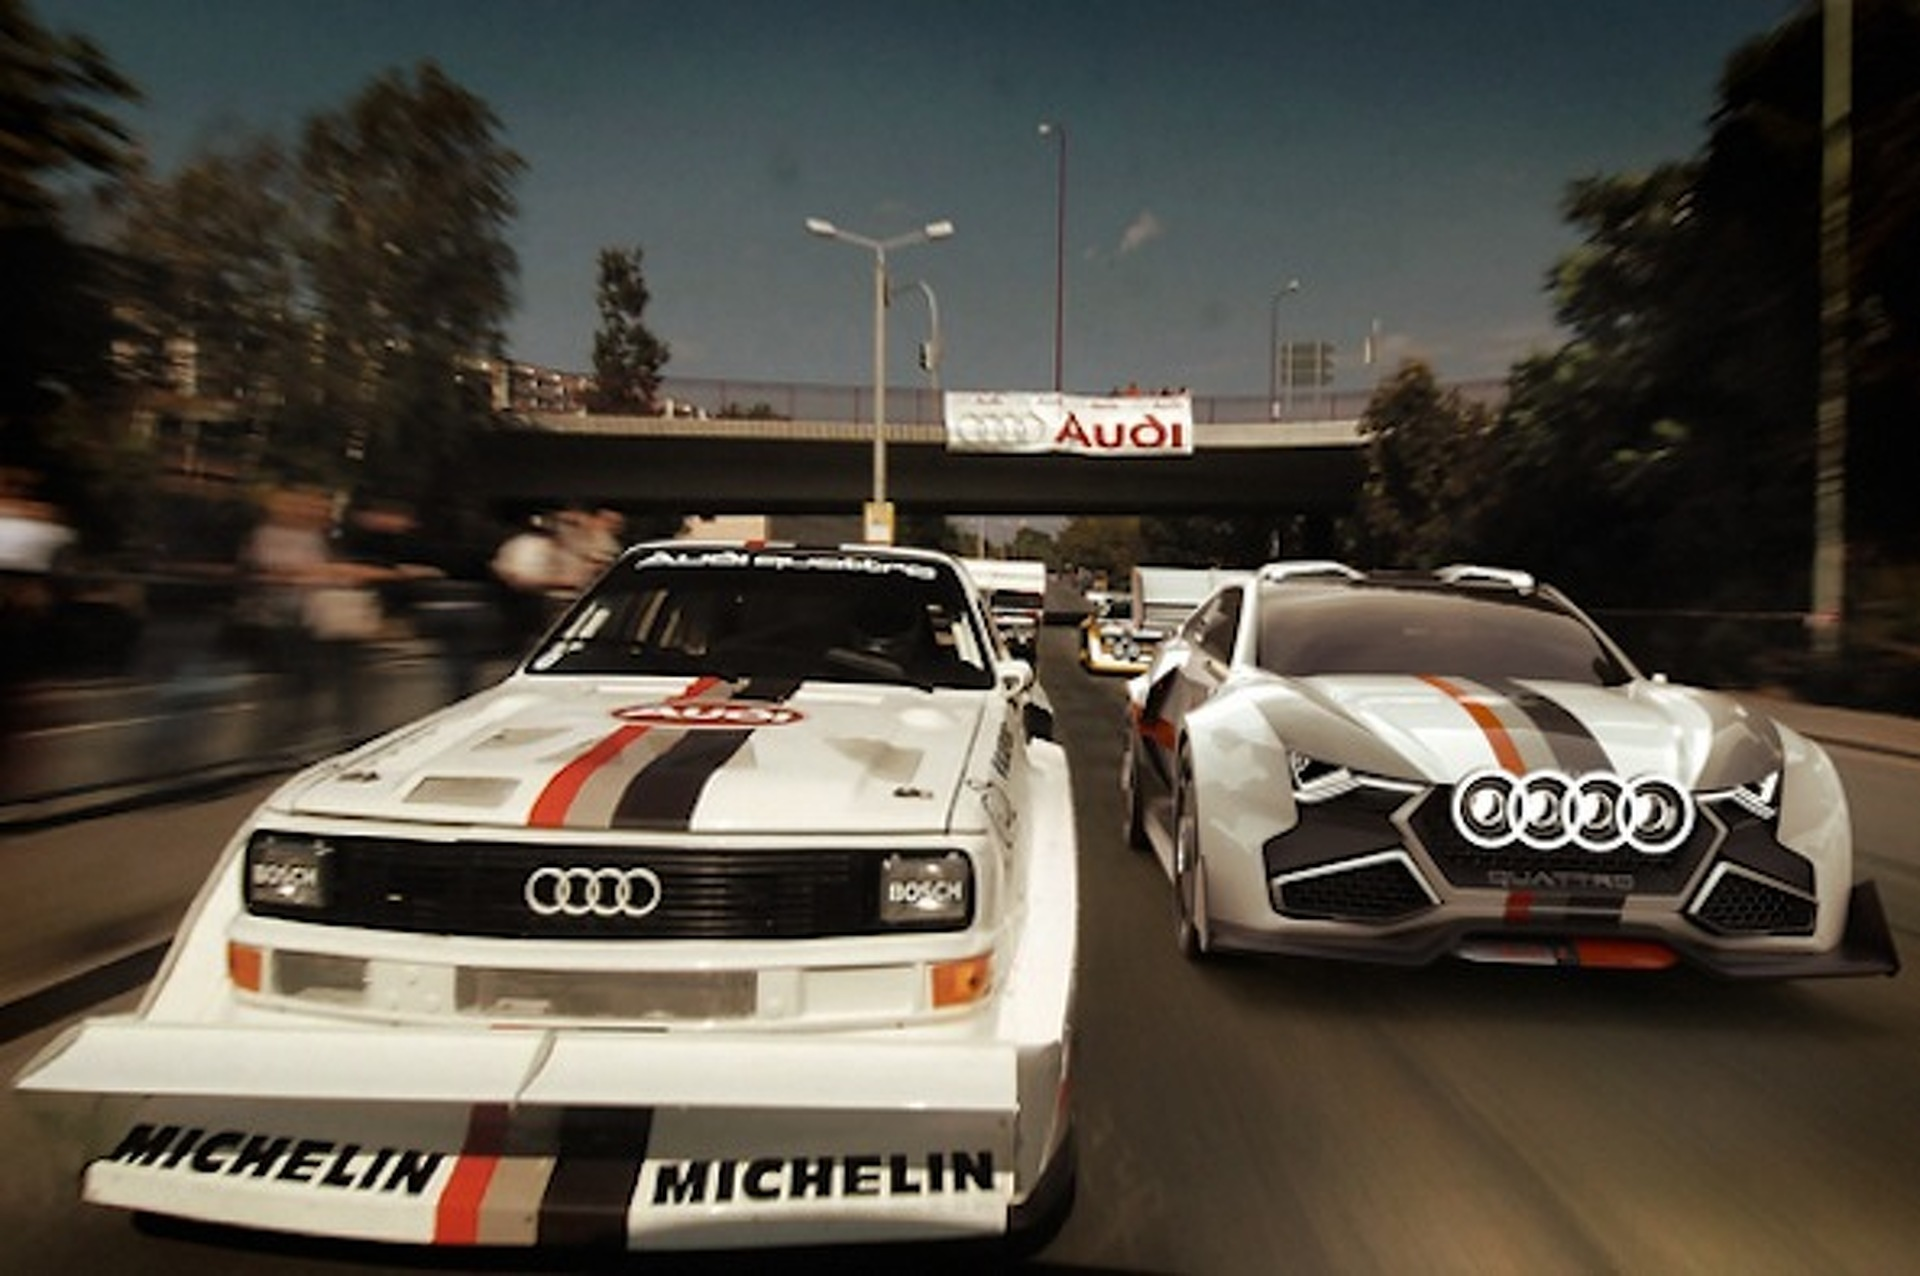 Audi Quattro Group B Concept: An Icon Gets a Menacing Makeover